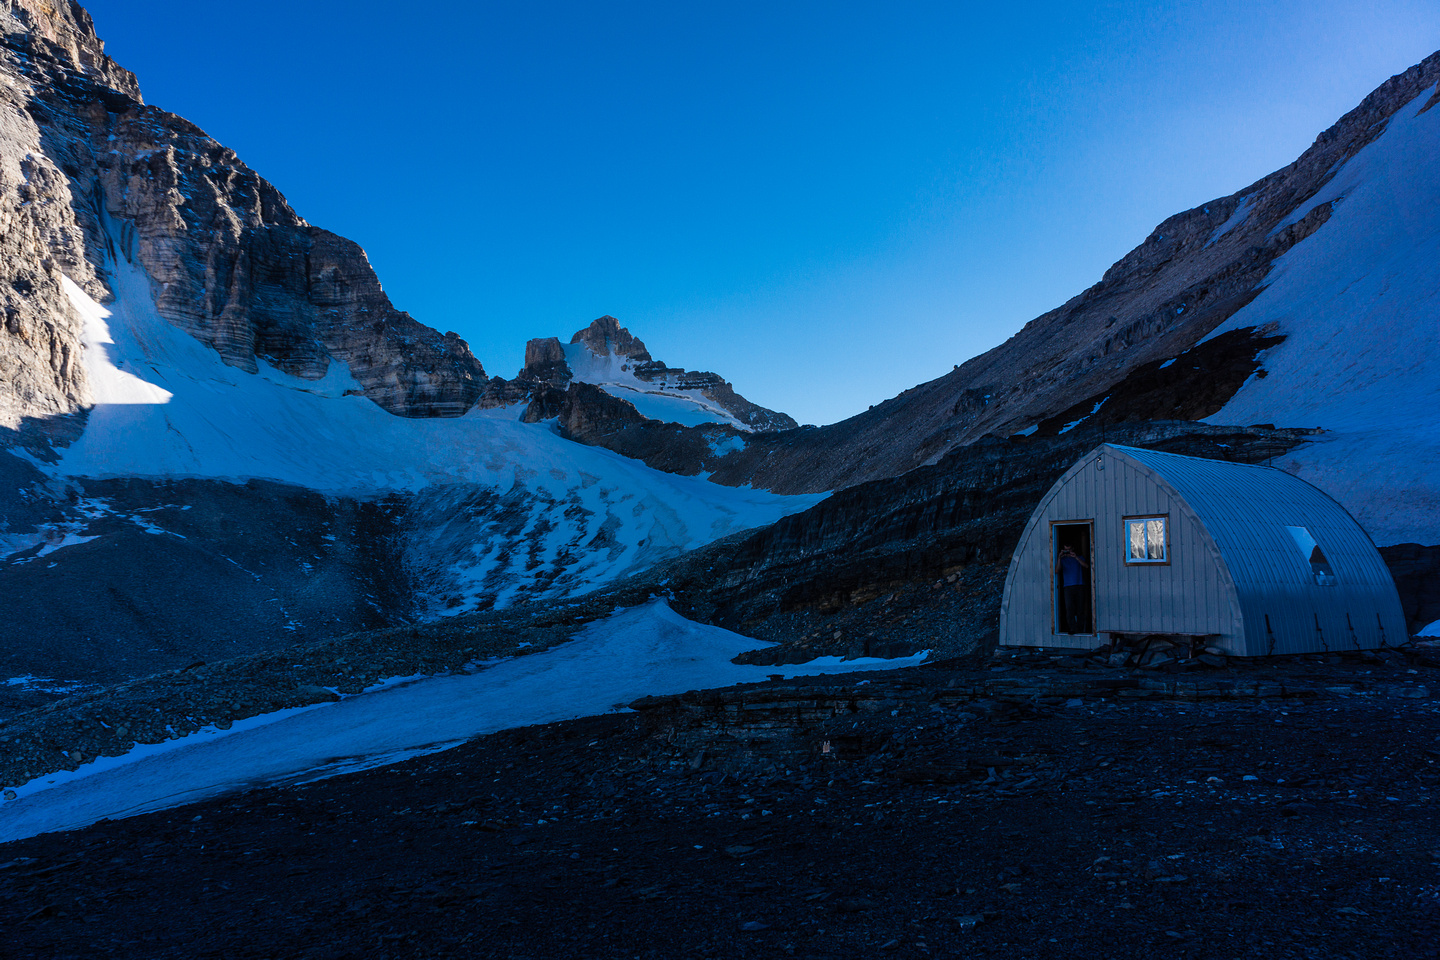 The Hind hut is an awesome way to spend the night before a climb - especially on the third weekend in September when it's completely empty!